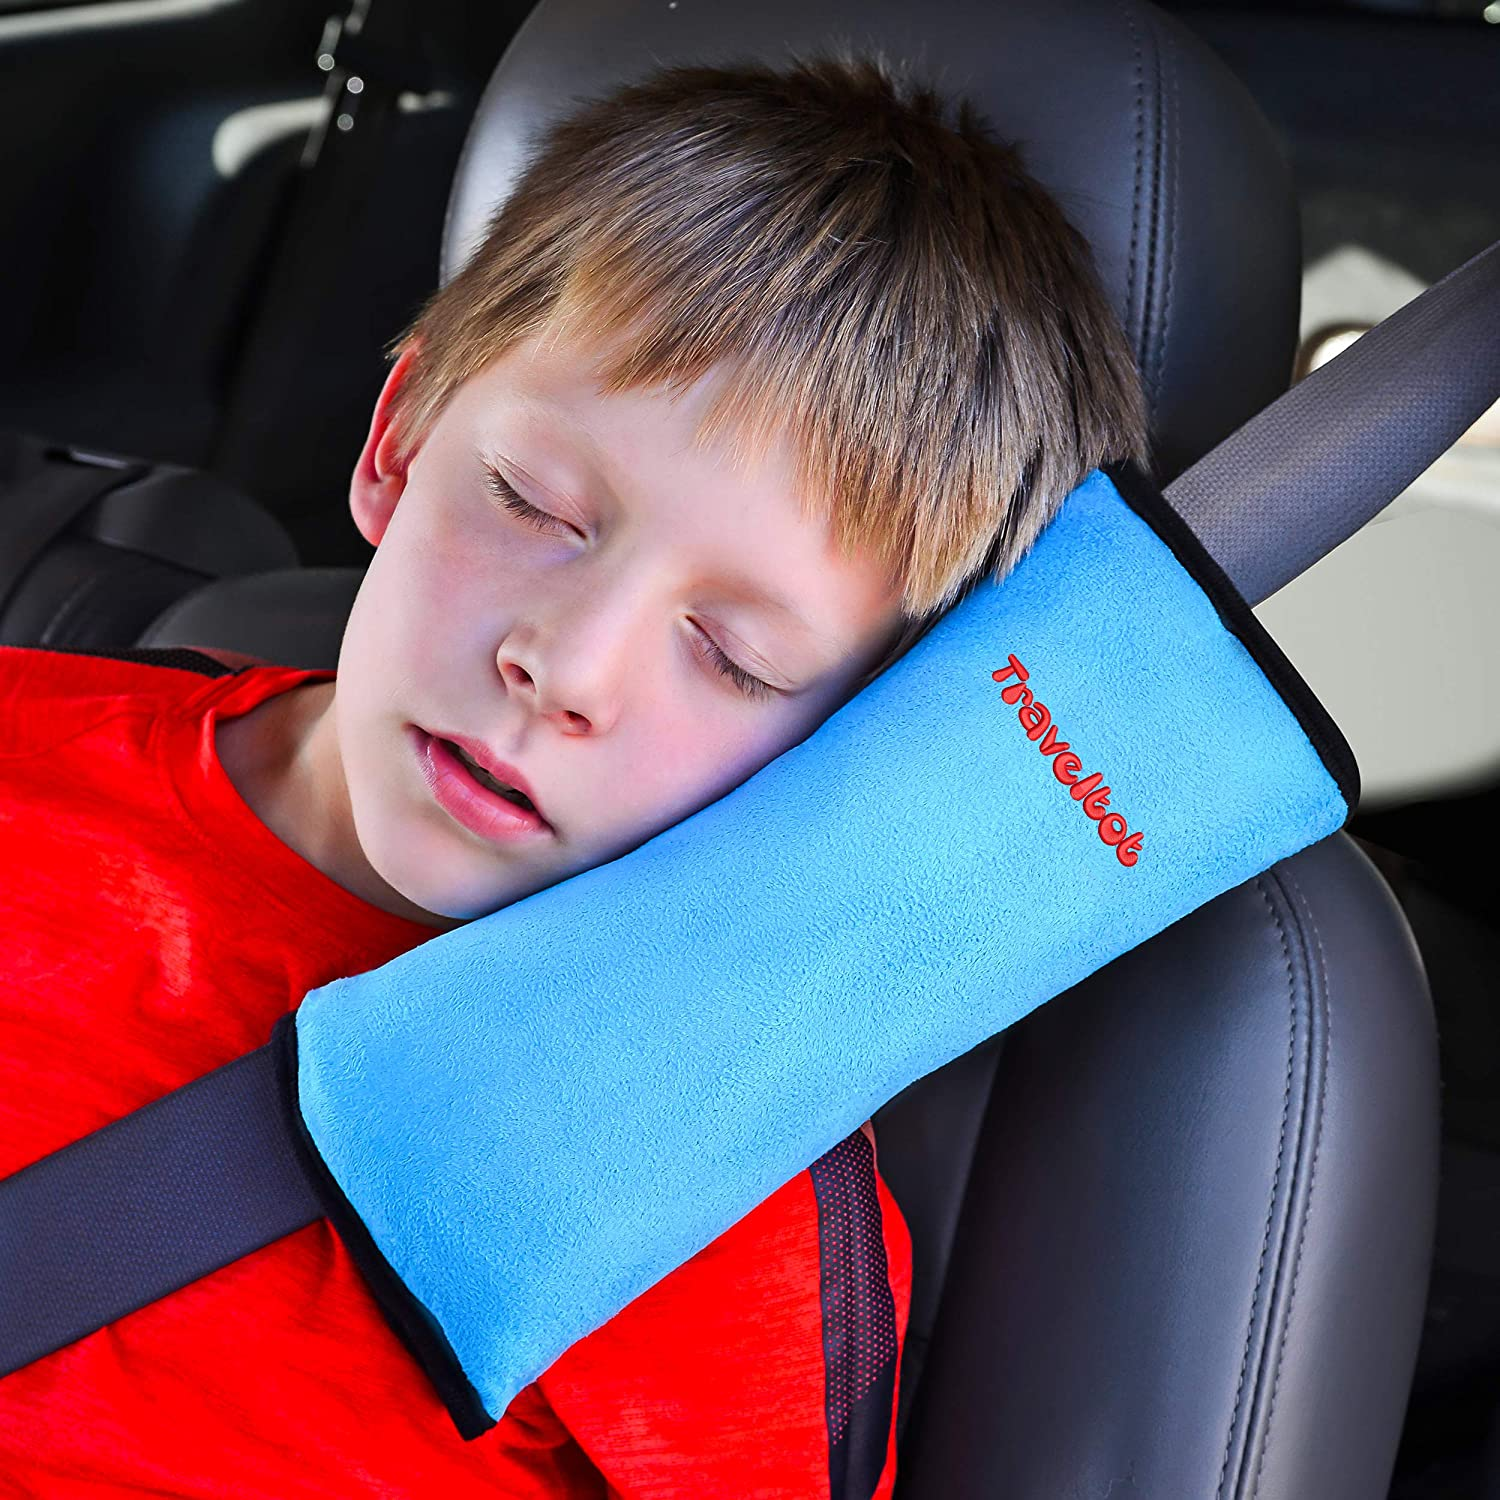 TRAVELTOT Premium Seatbelt Pillow - Comfy Travel Pillow for Your Baby & Toddler – Universal Car Cushion with Head & Neck Support for Kids & Adults – Best Skin Friendly Seat Belt Cover with Strap